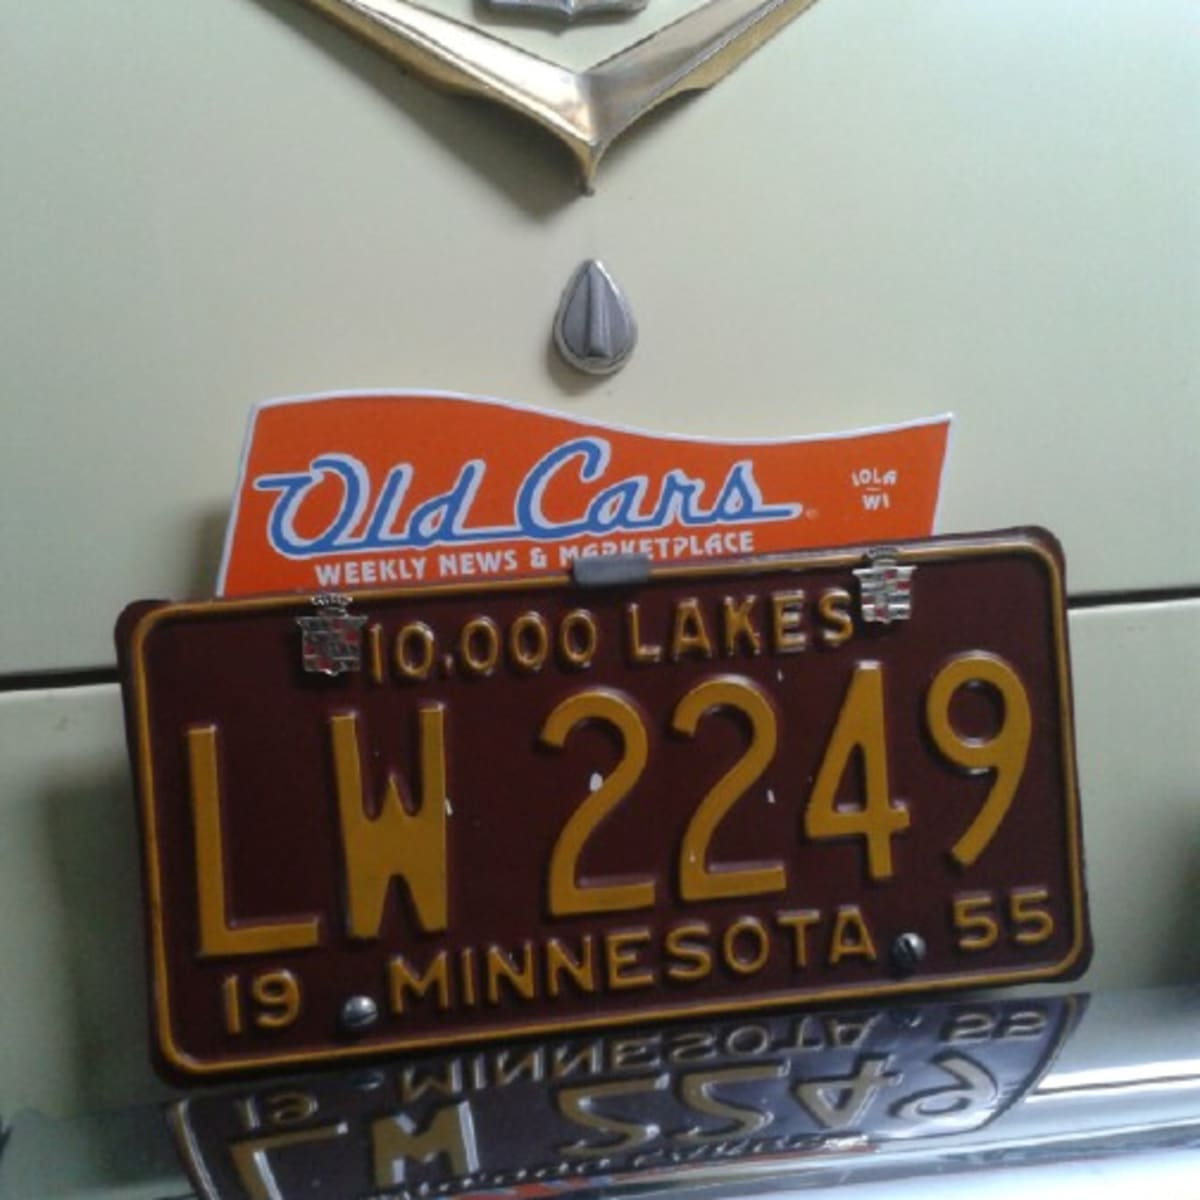 Old Cars License Plate Topper Makes A Great Christmas Gift Old Cars Weekly